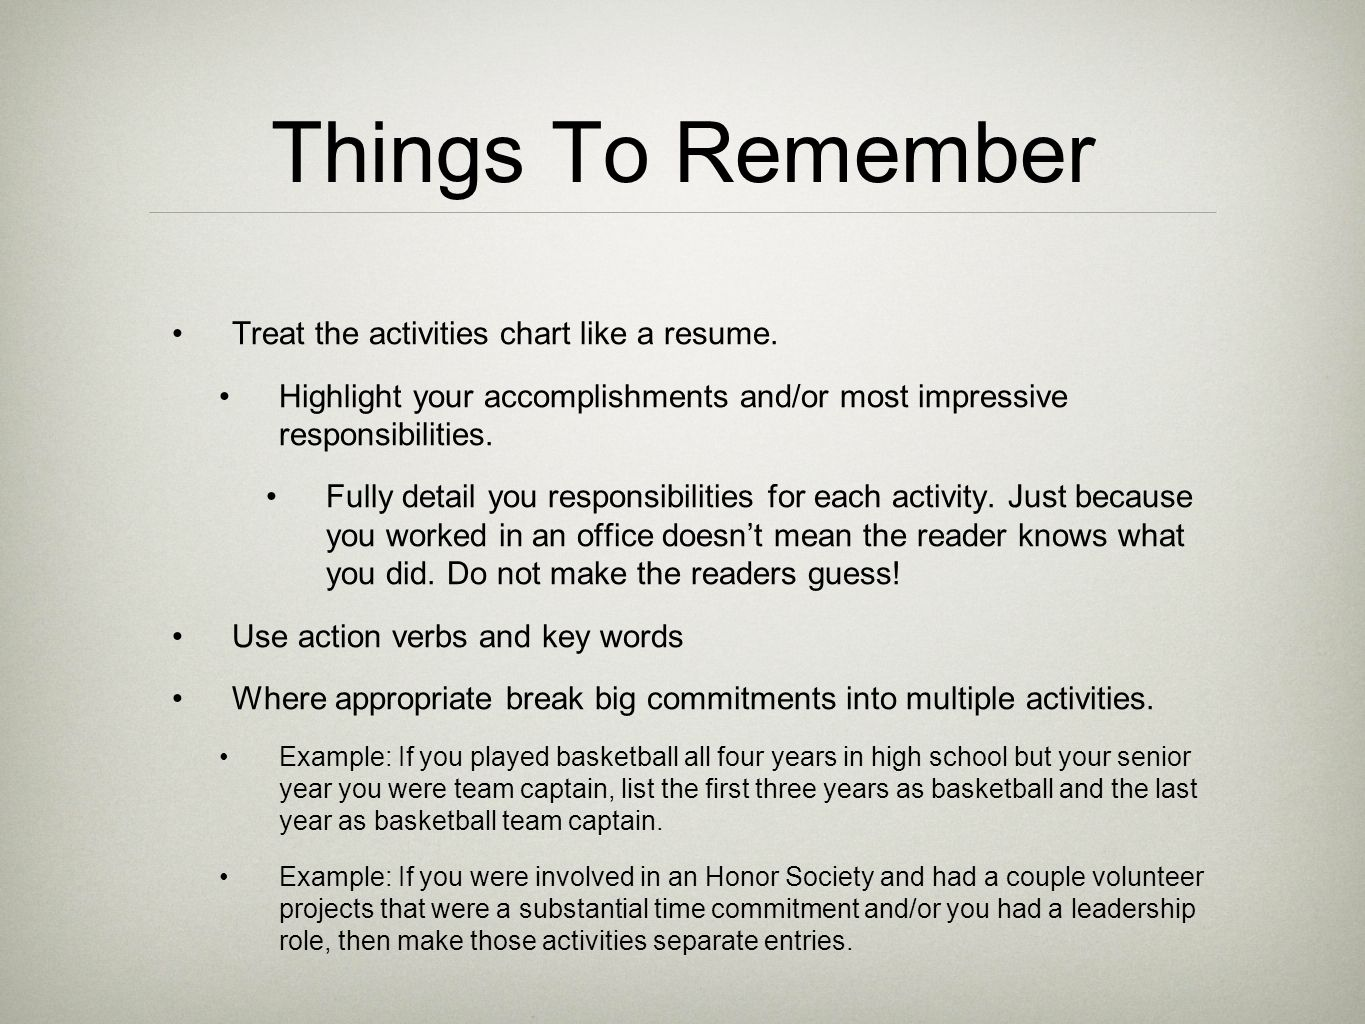 Things Not To Do On A Resume Preparing Resumes And Student Activity Charts Ppt Video